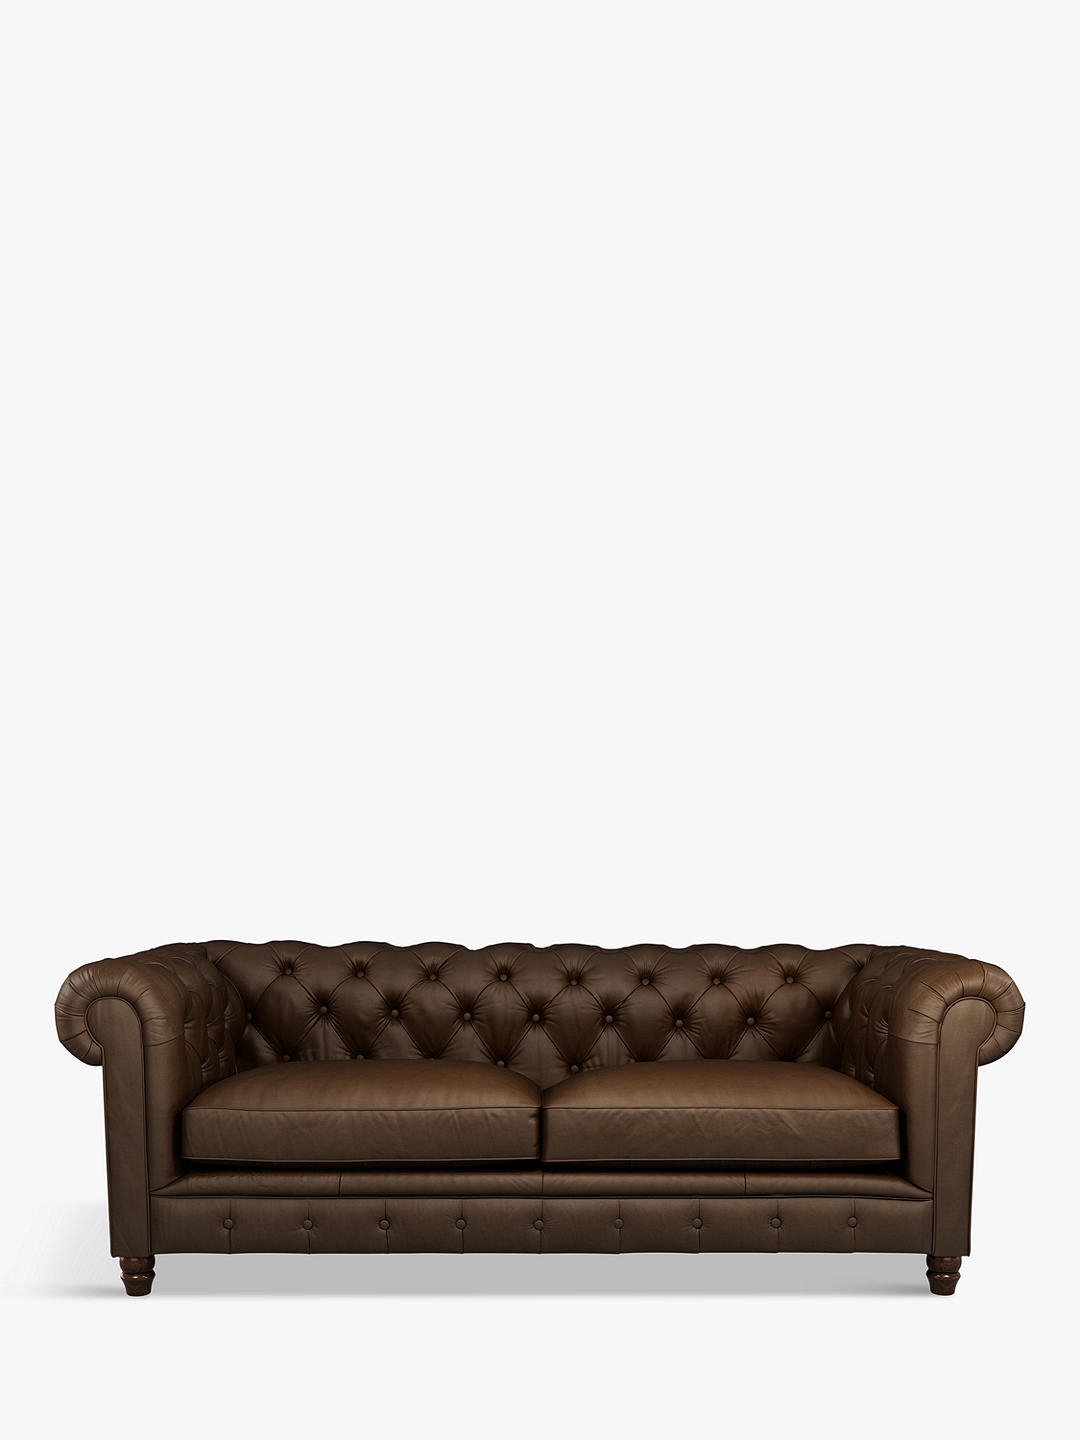 Buy Halo Earle Chesterfield Large 3 Seater Leather Sofa, Pure Dye Nutmeg Online at johnlewis.com